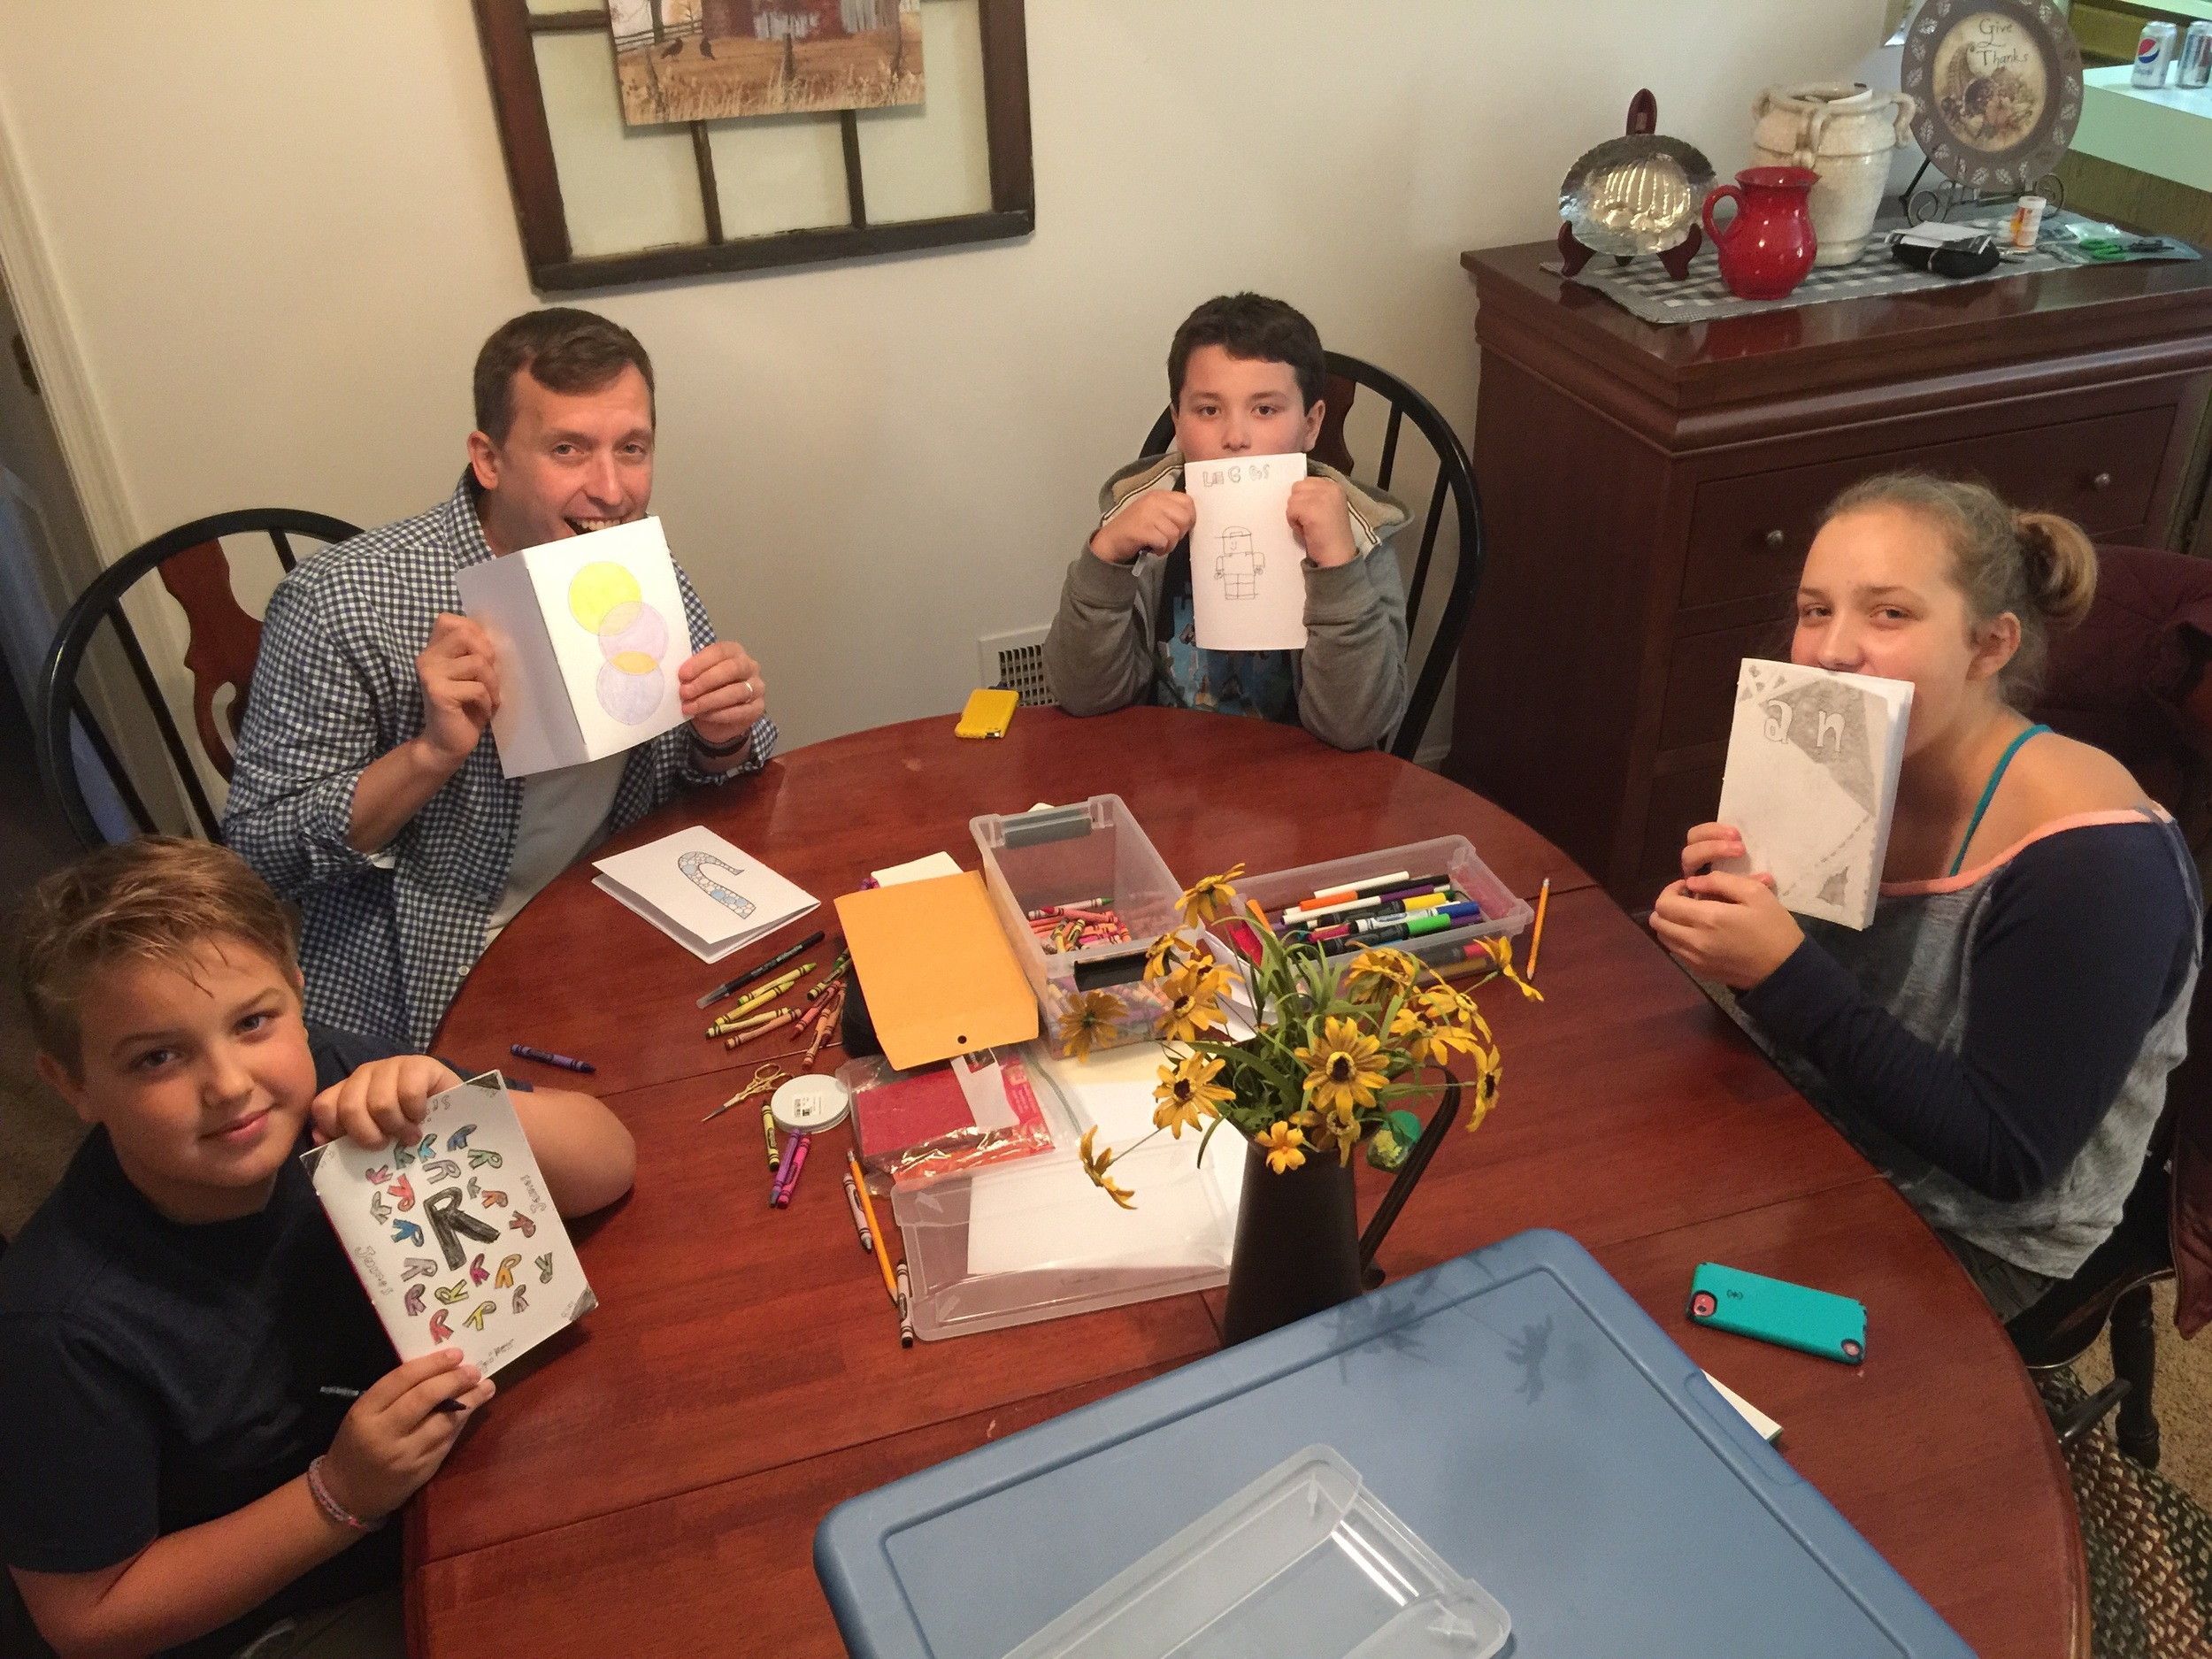 Riley, Bryson and Annie making sketchbooks with Uncle Jason